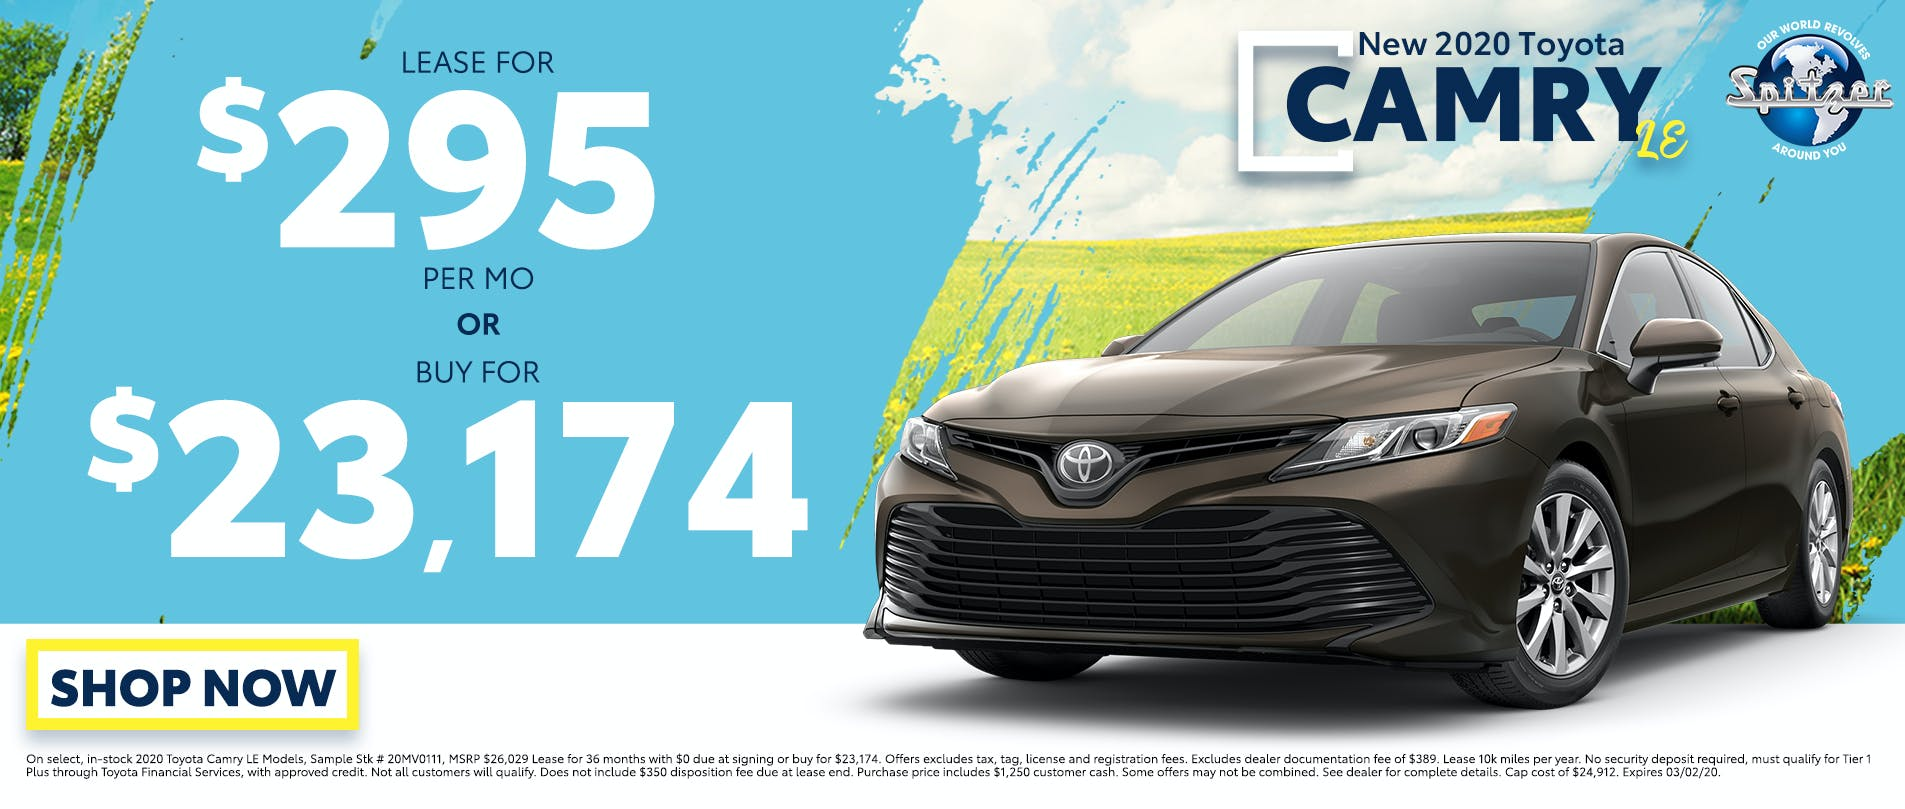 Camry | Lease for $295 per mo